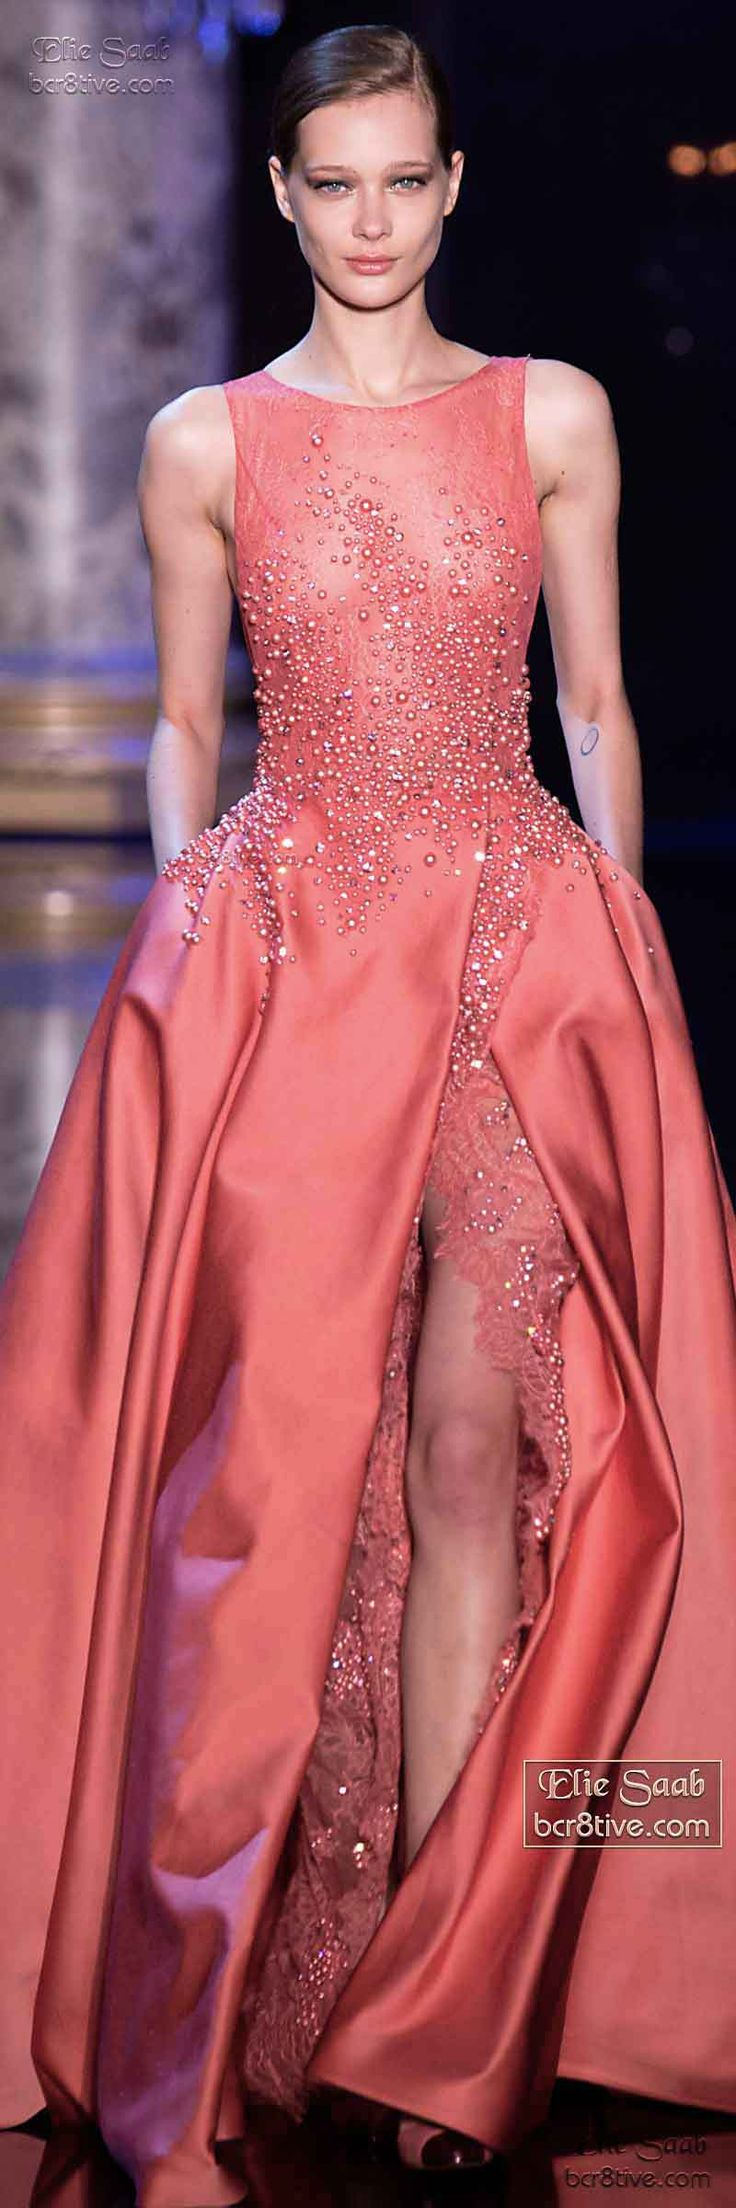 Elie Saab Fall Winter 2014-15 Haute Couture mrp